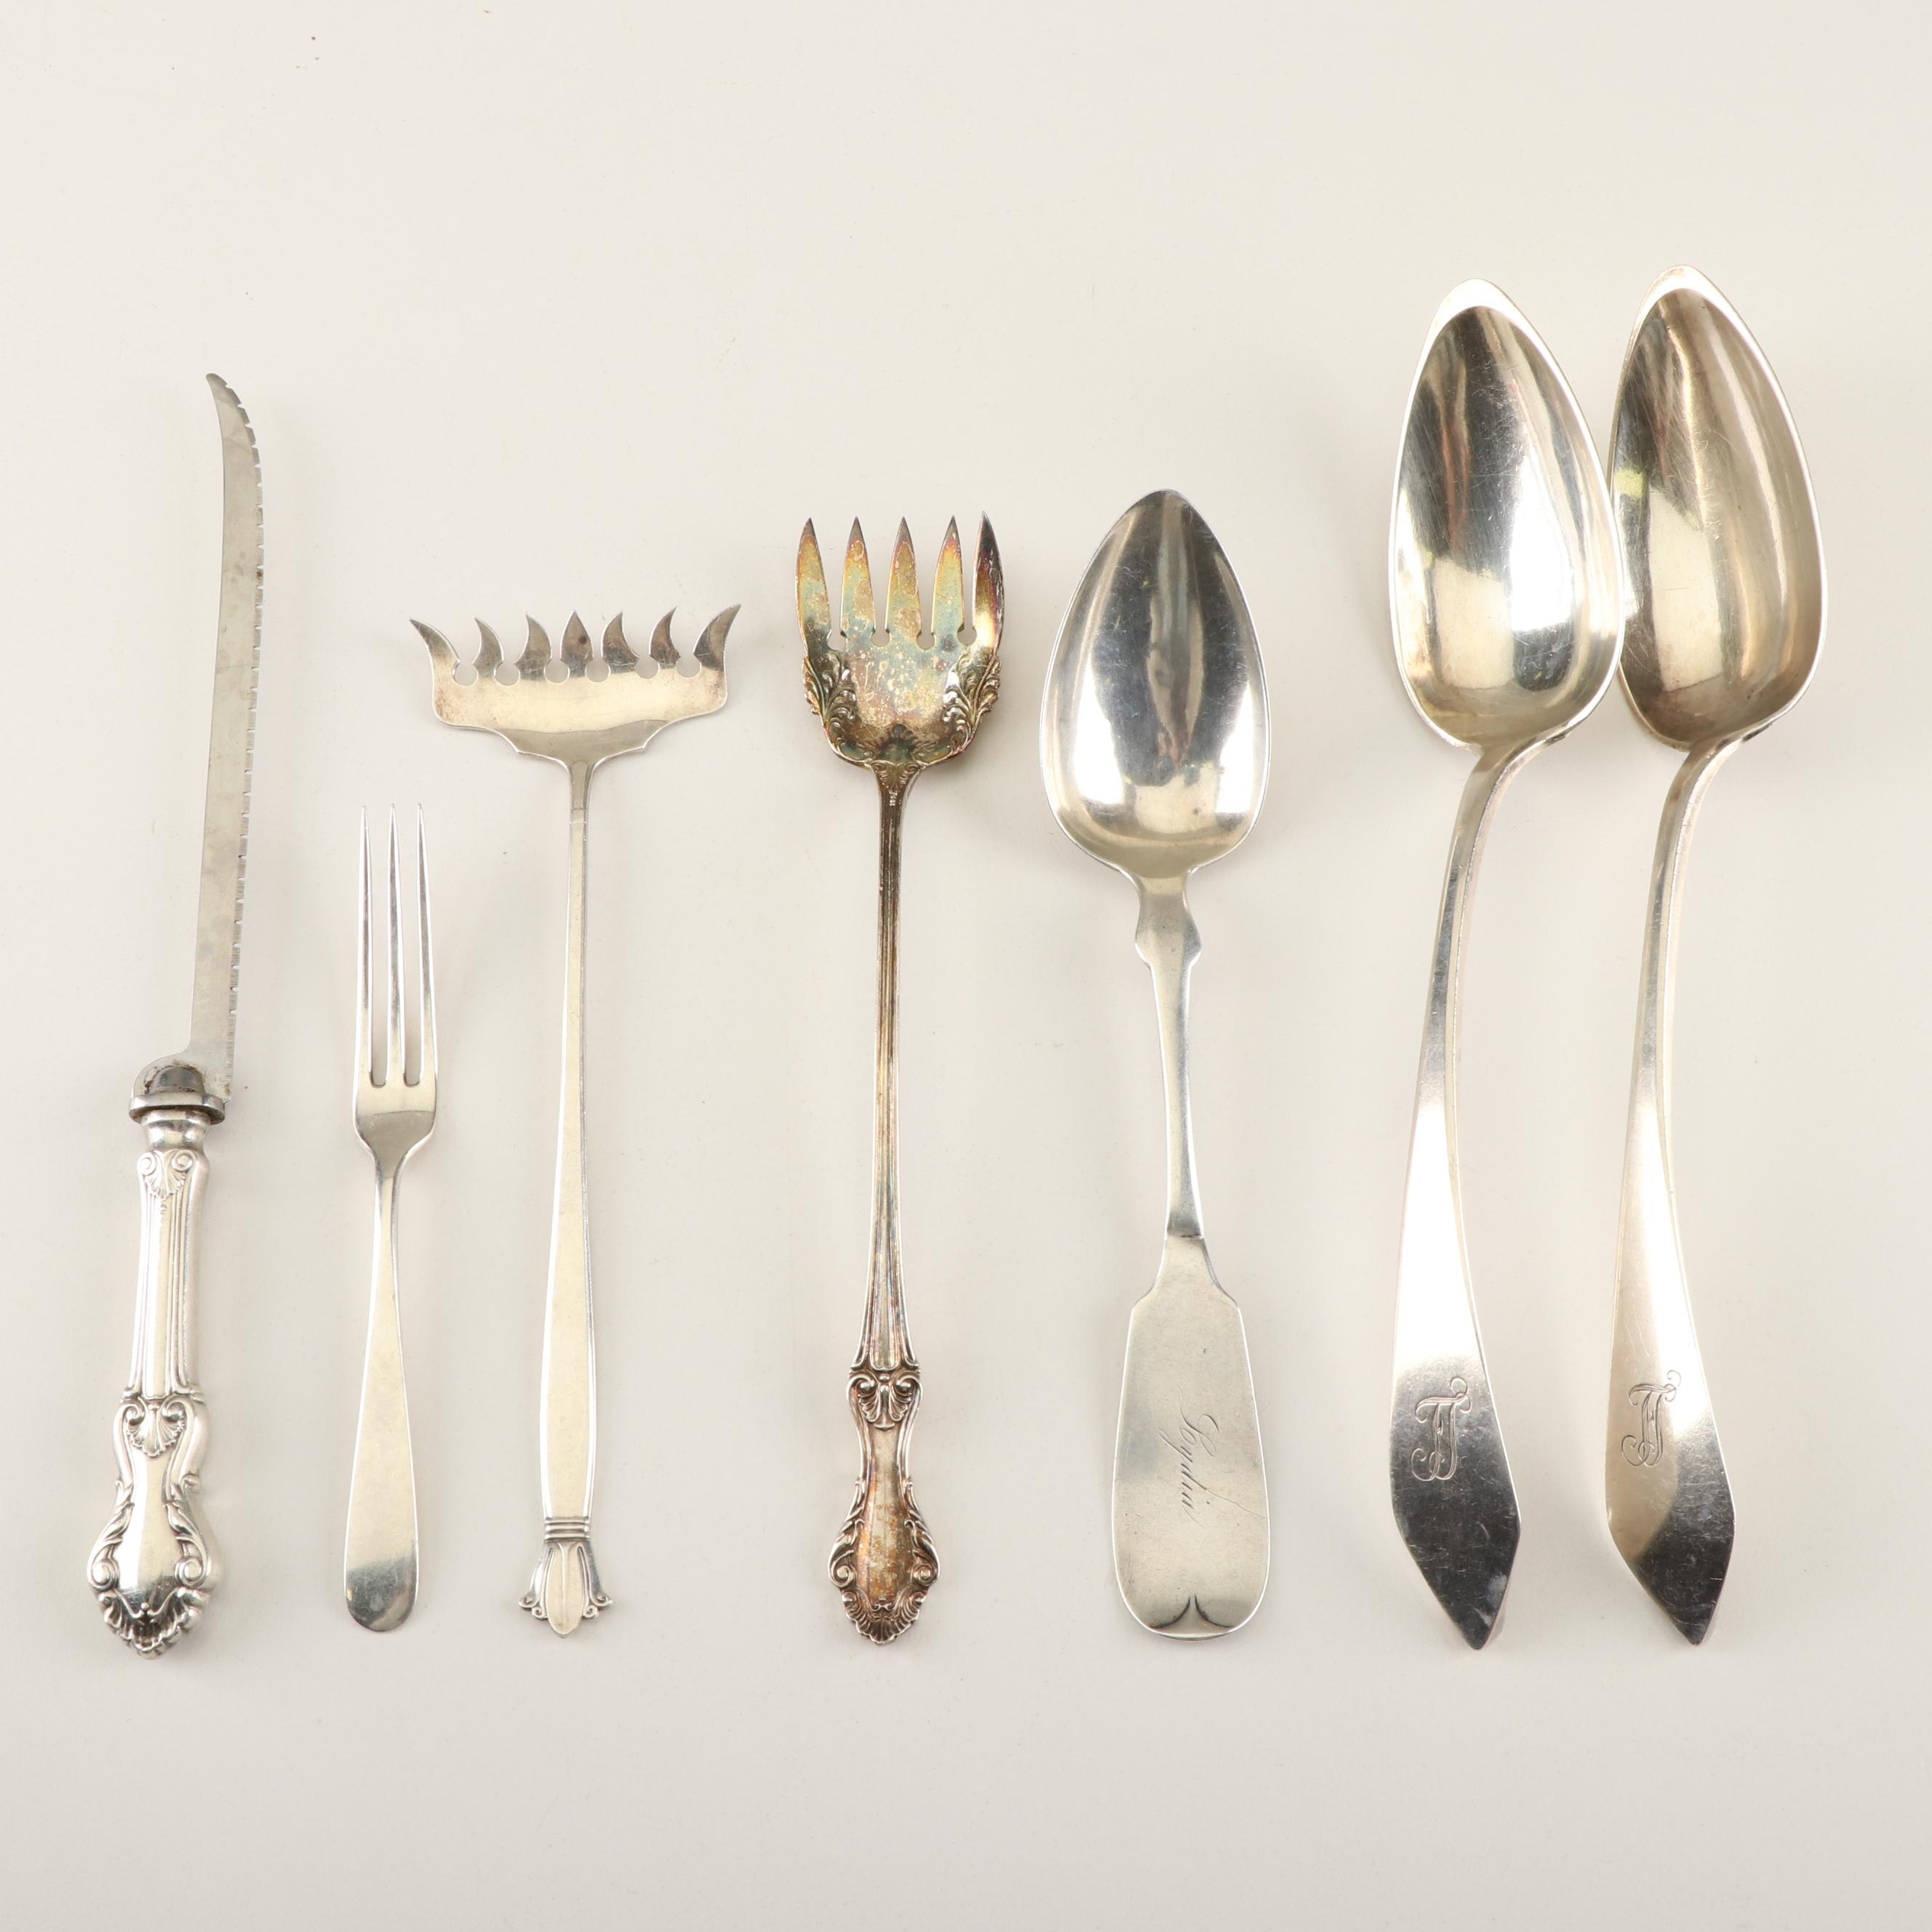 American Sterling Flatware Featuring Coin Silver